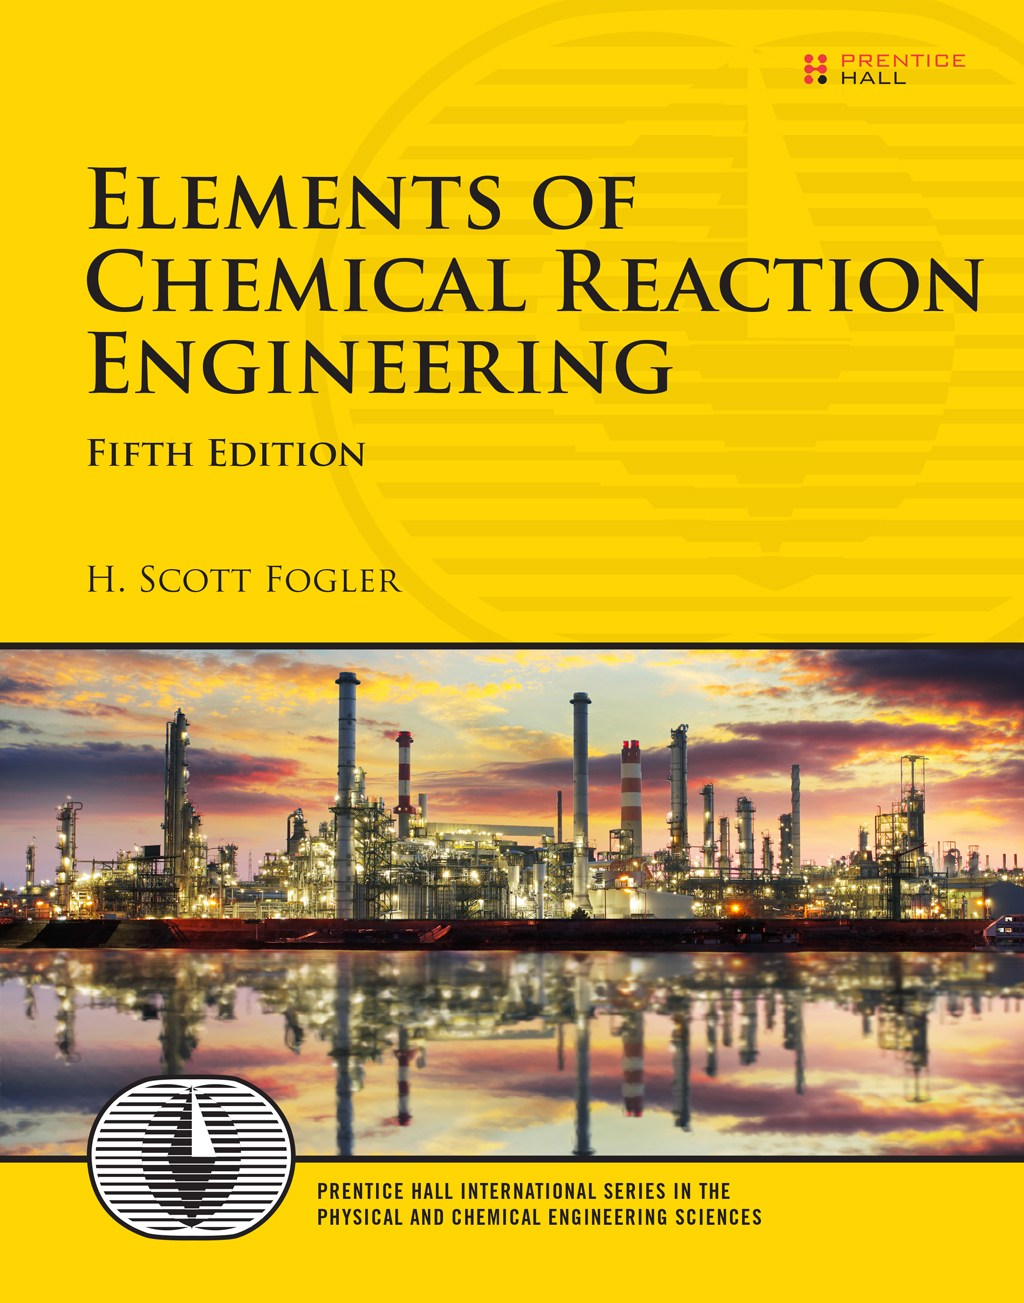 Elements of Chemical Reaction Engineering, 5th Edition.